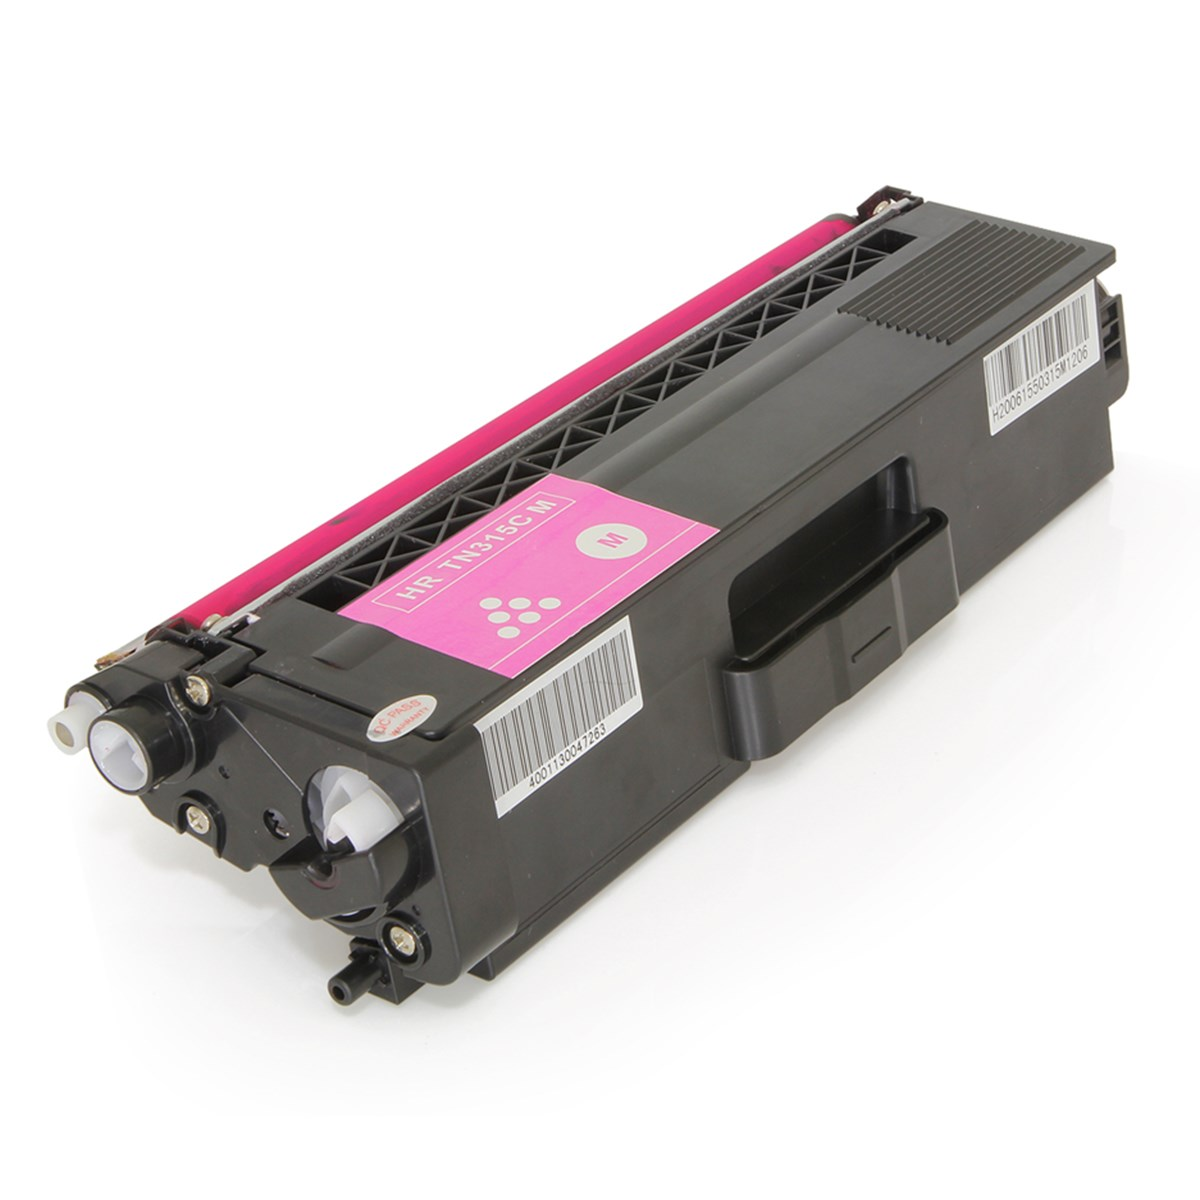 Compativel: Toner novasupri Brother TN315 MFC9970 MFC9460 HL4140 HL4150 HL4570 Magenta